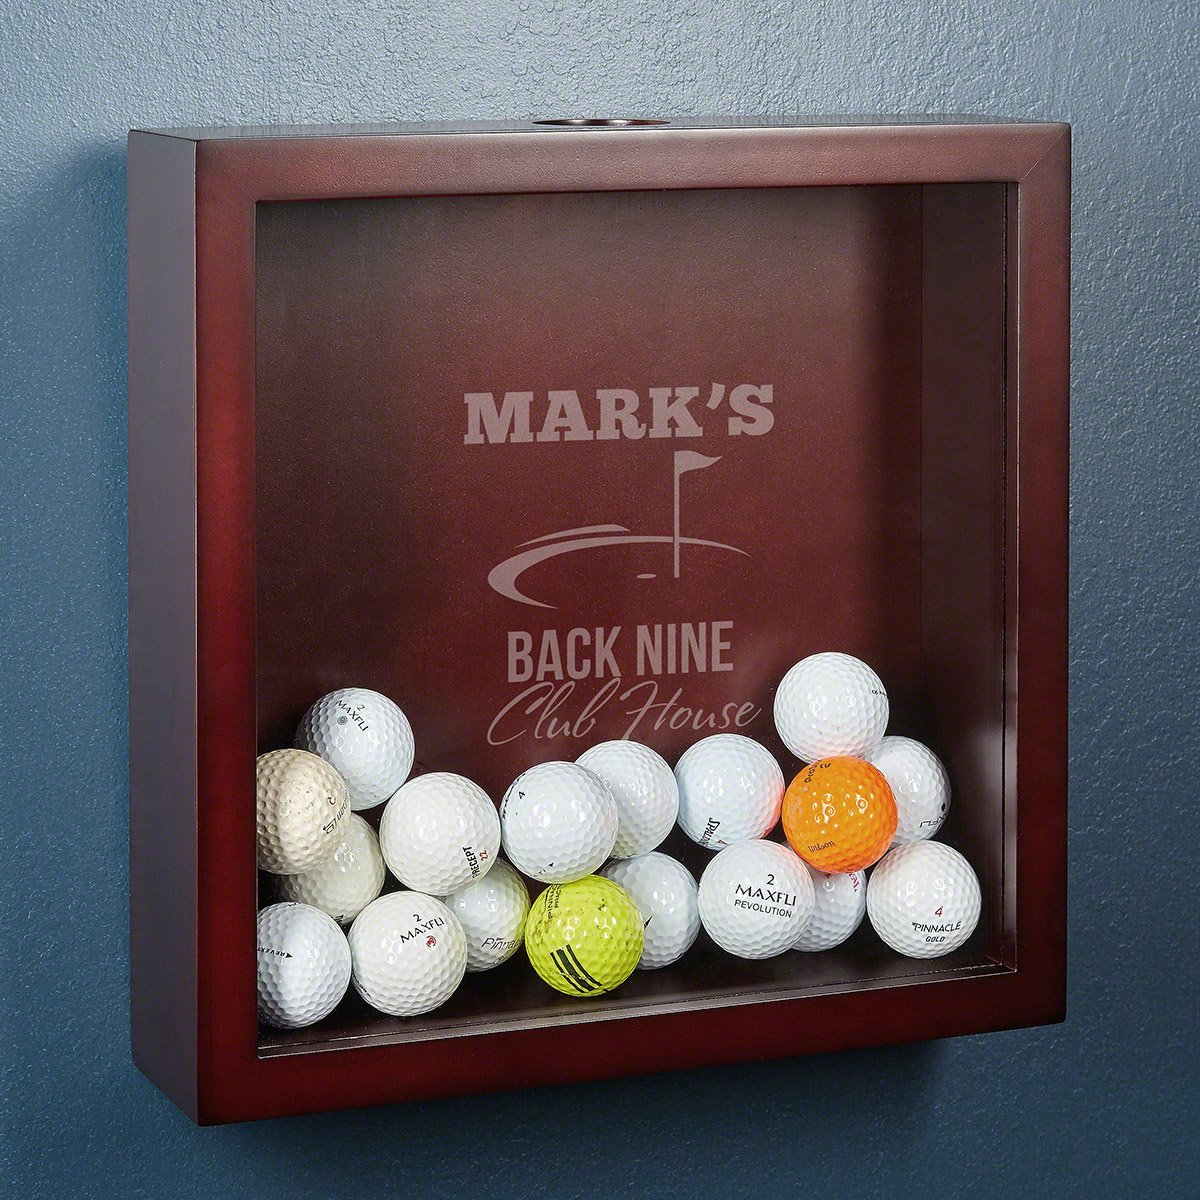 Back Nine Club House Personalized Golf Shadow Box by HomeWetBar - Perfect Gift for Golfers